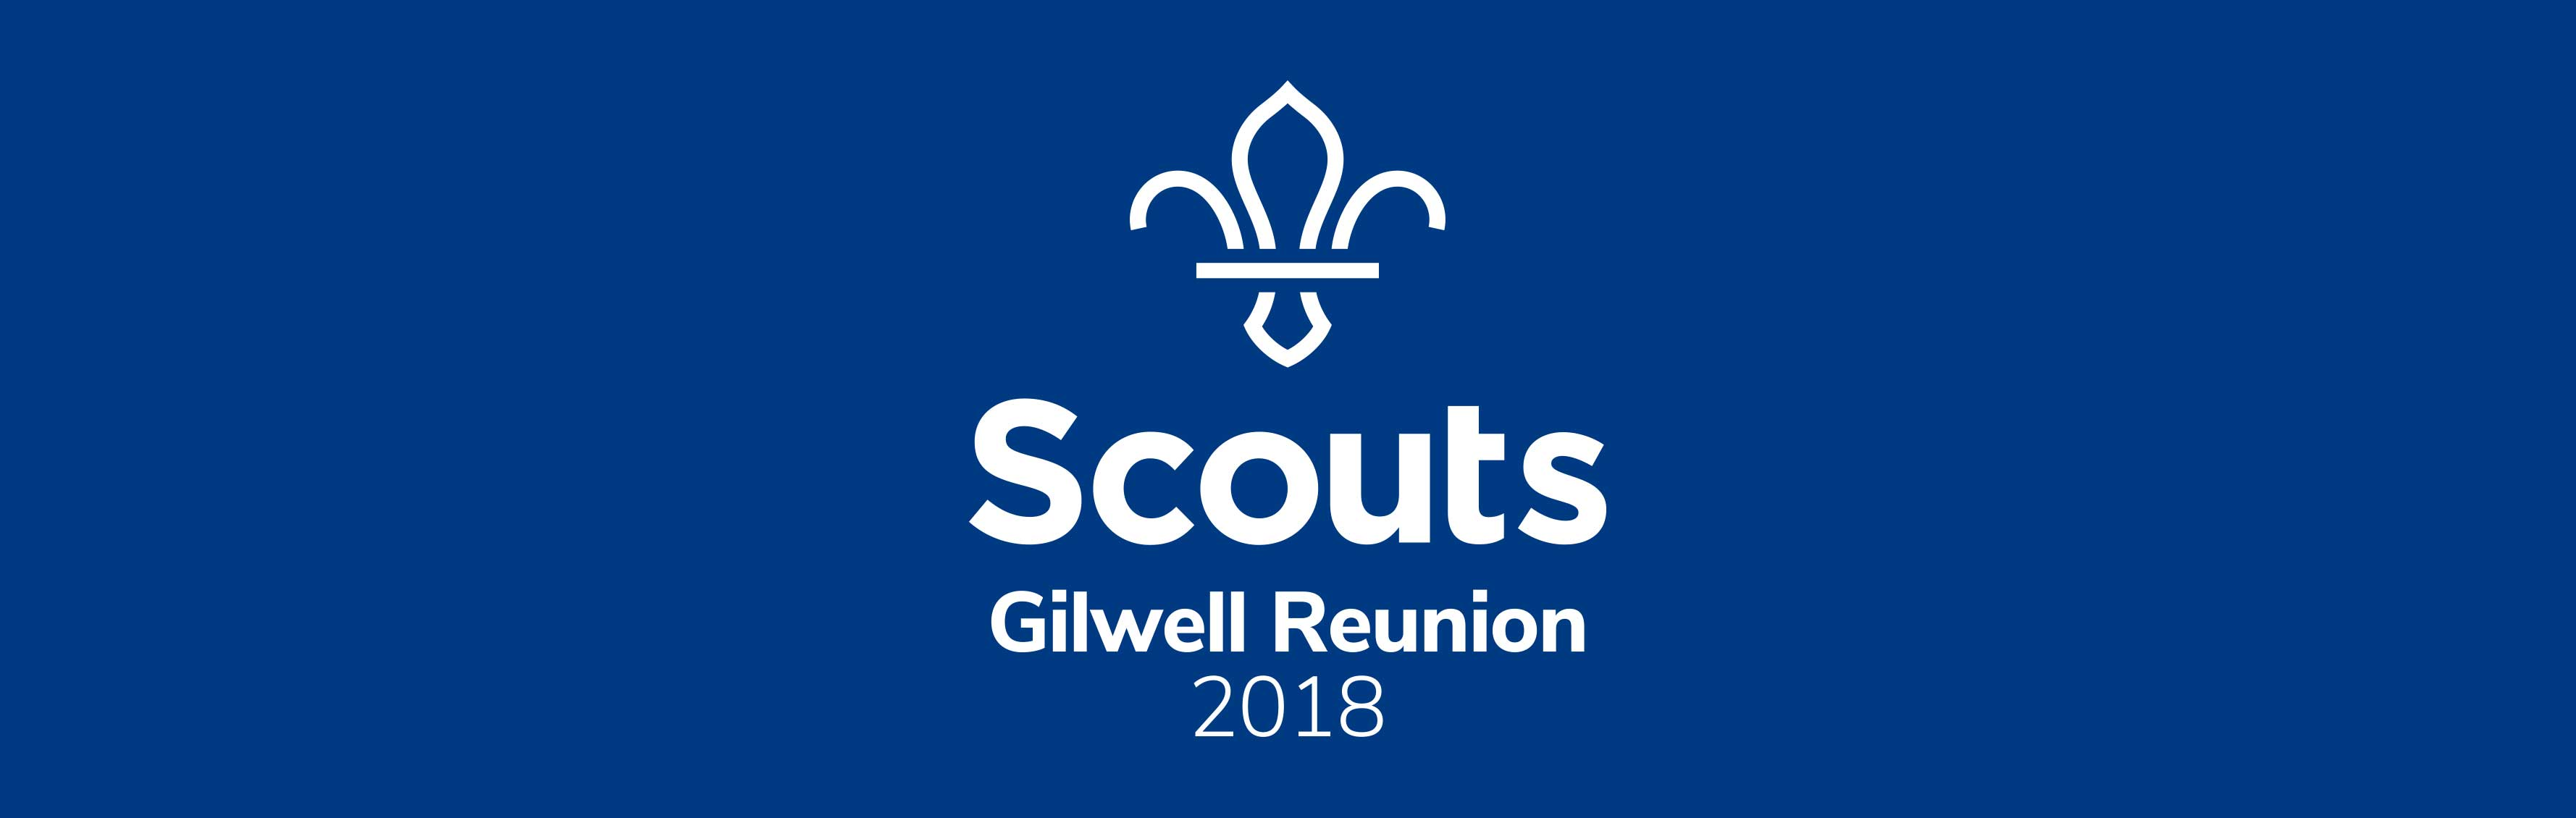 Gilwell Reunion 2018 – Hannah Kentish